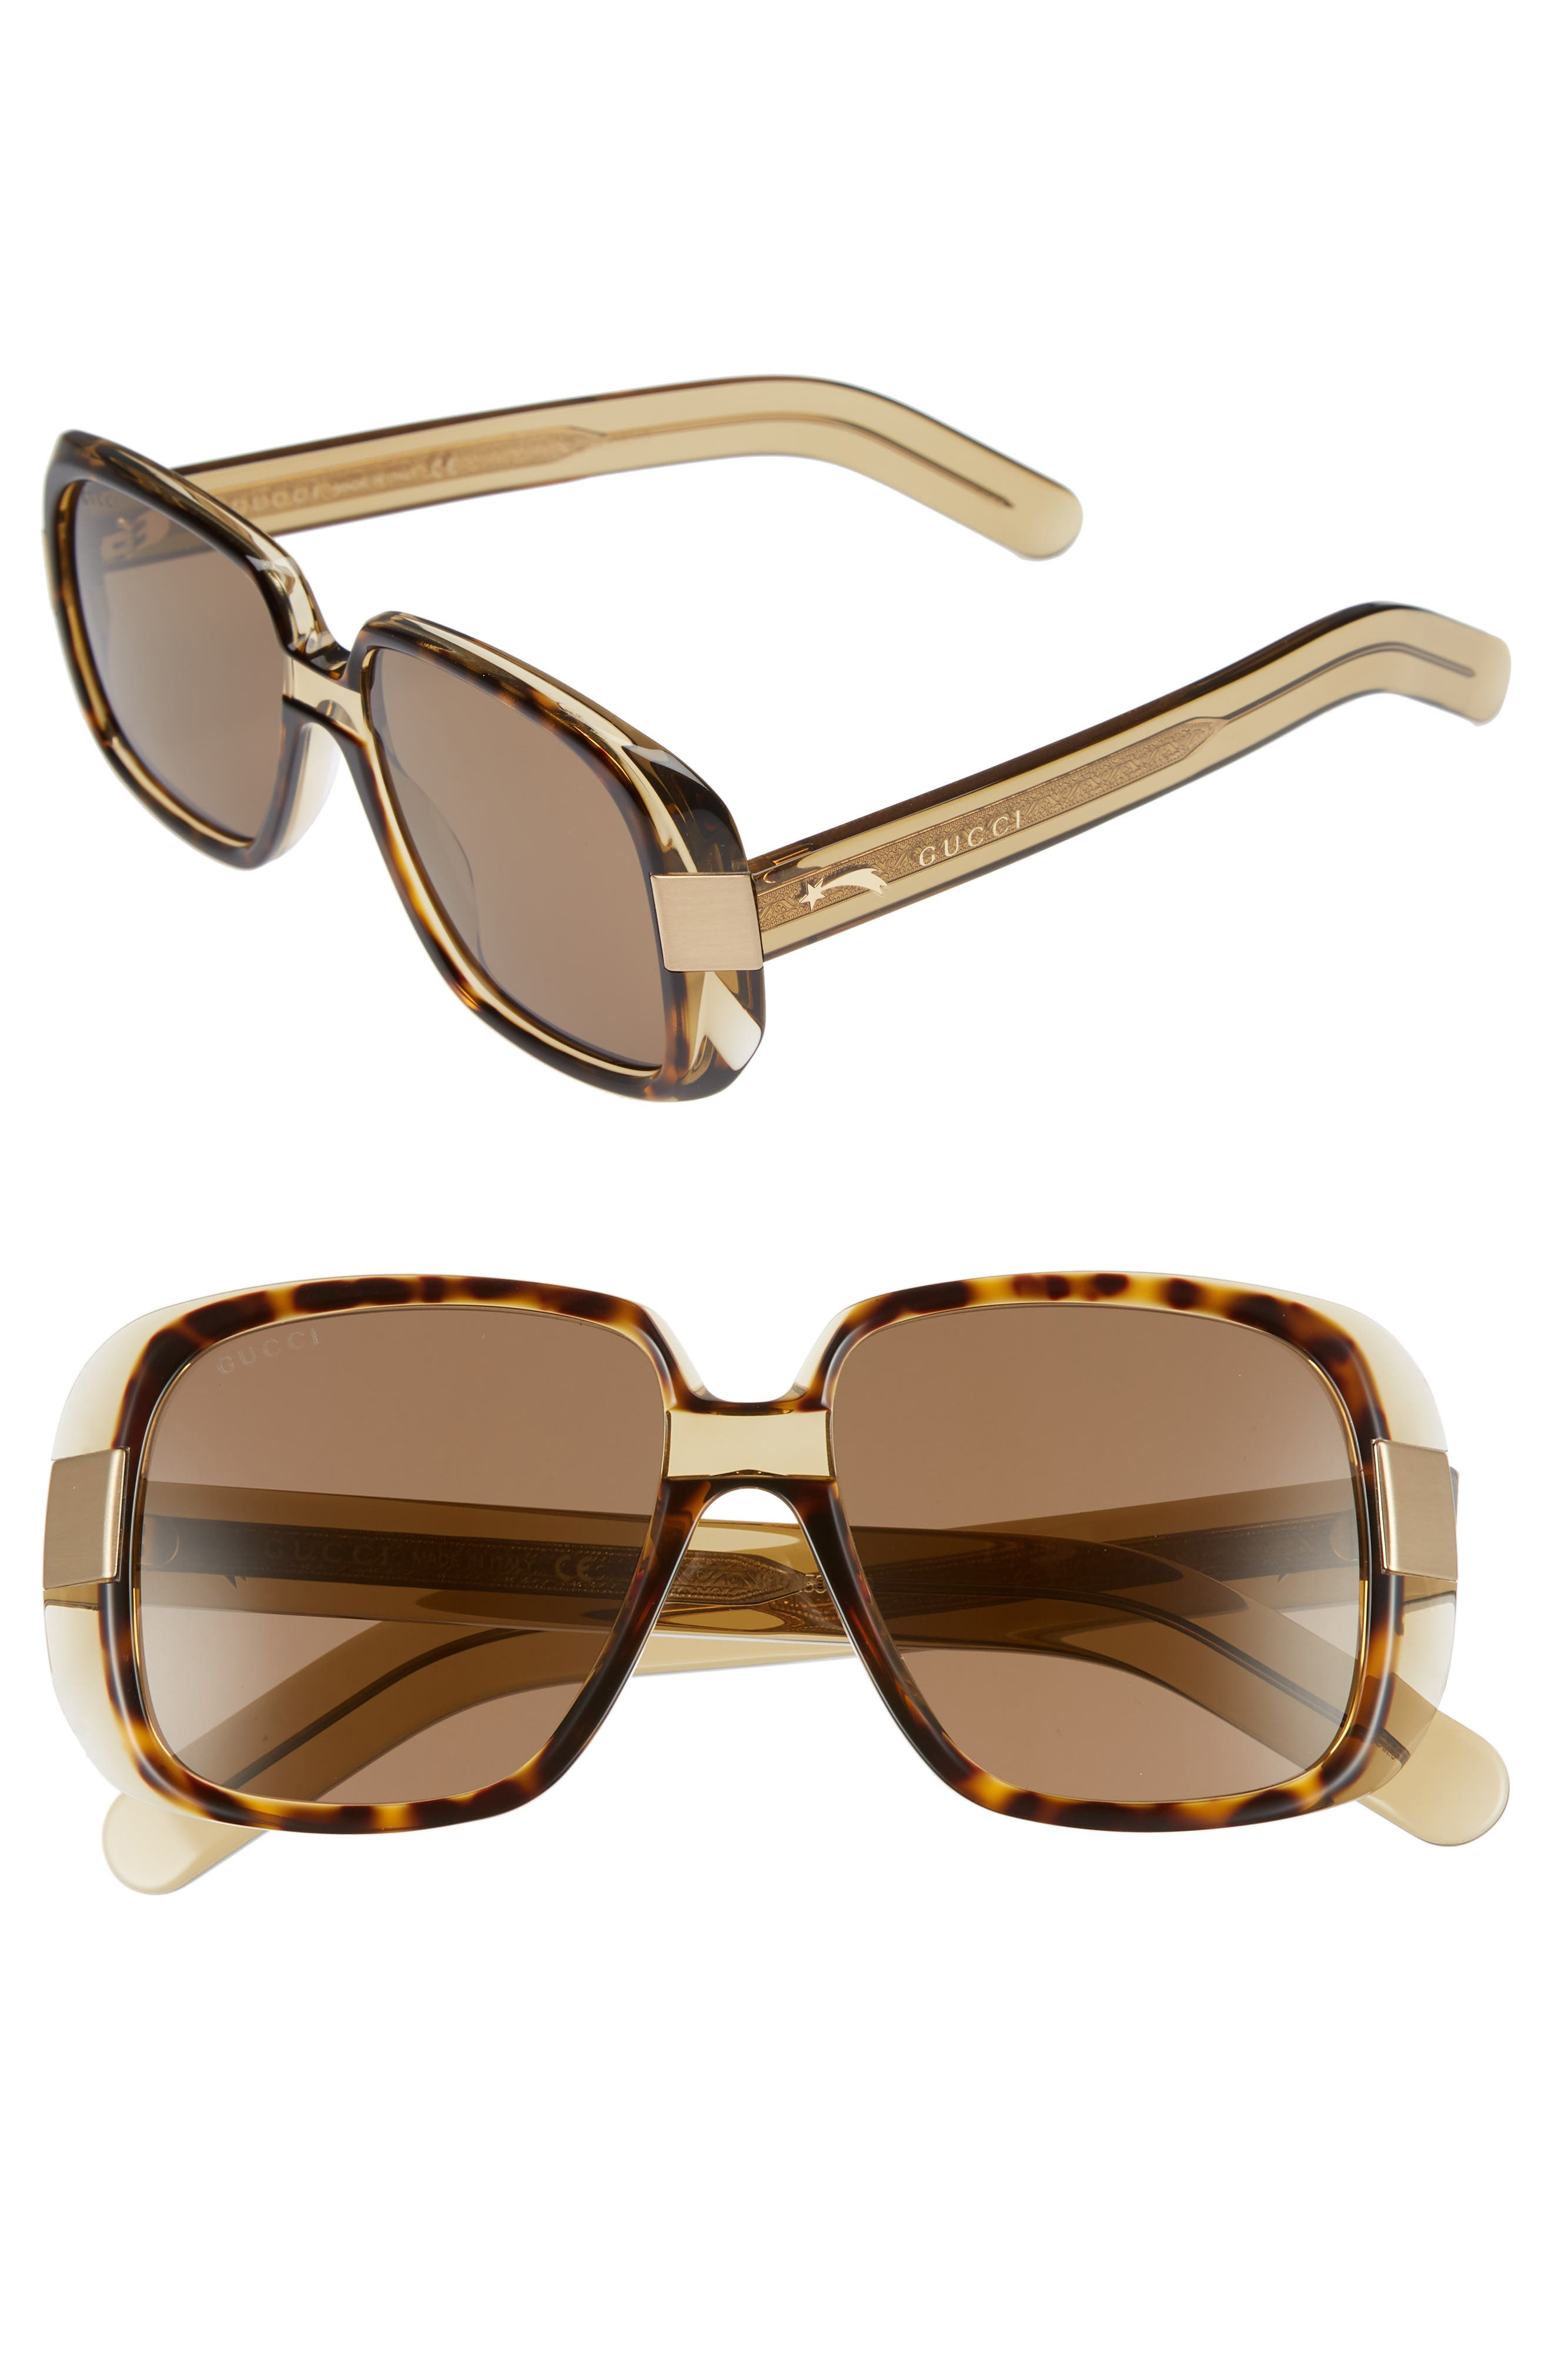 Cruise 51mm Square Sunglasses,                             Main thumbnail 1, color,